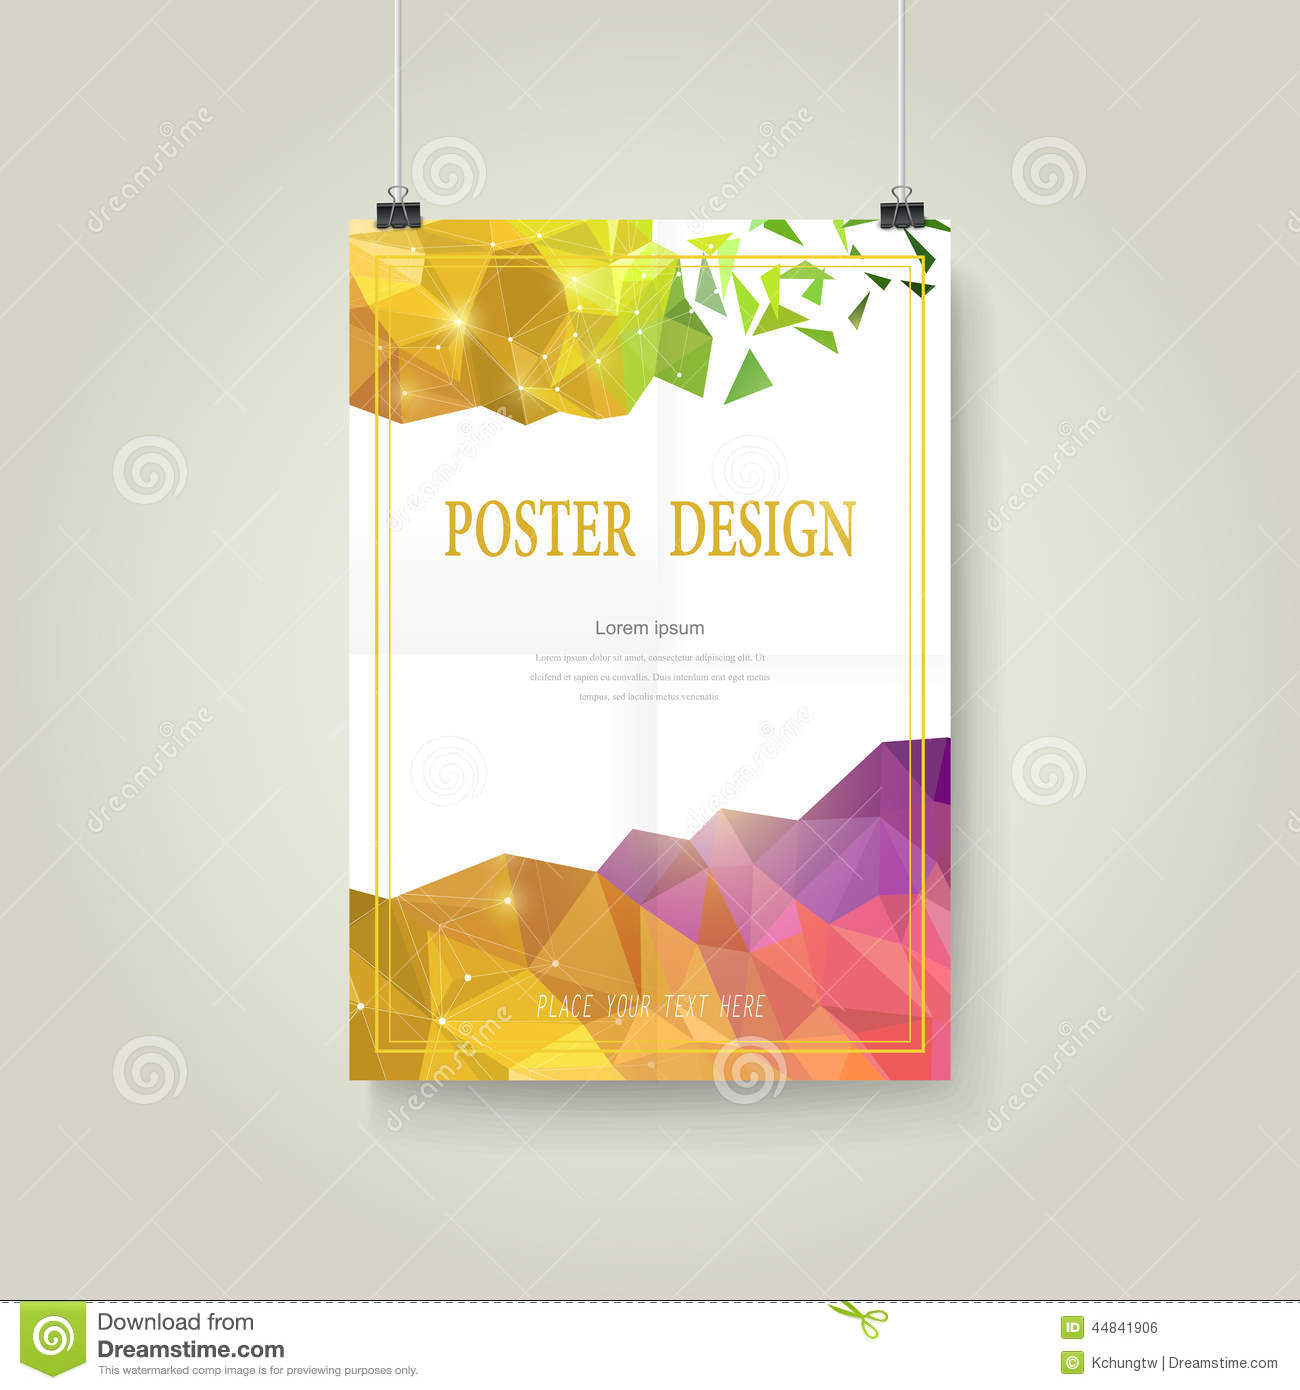 Poster design background - Background Colorful Design Geometric Poster